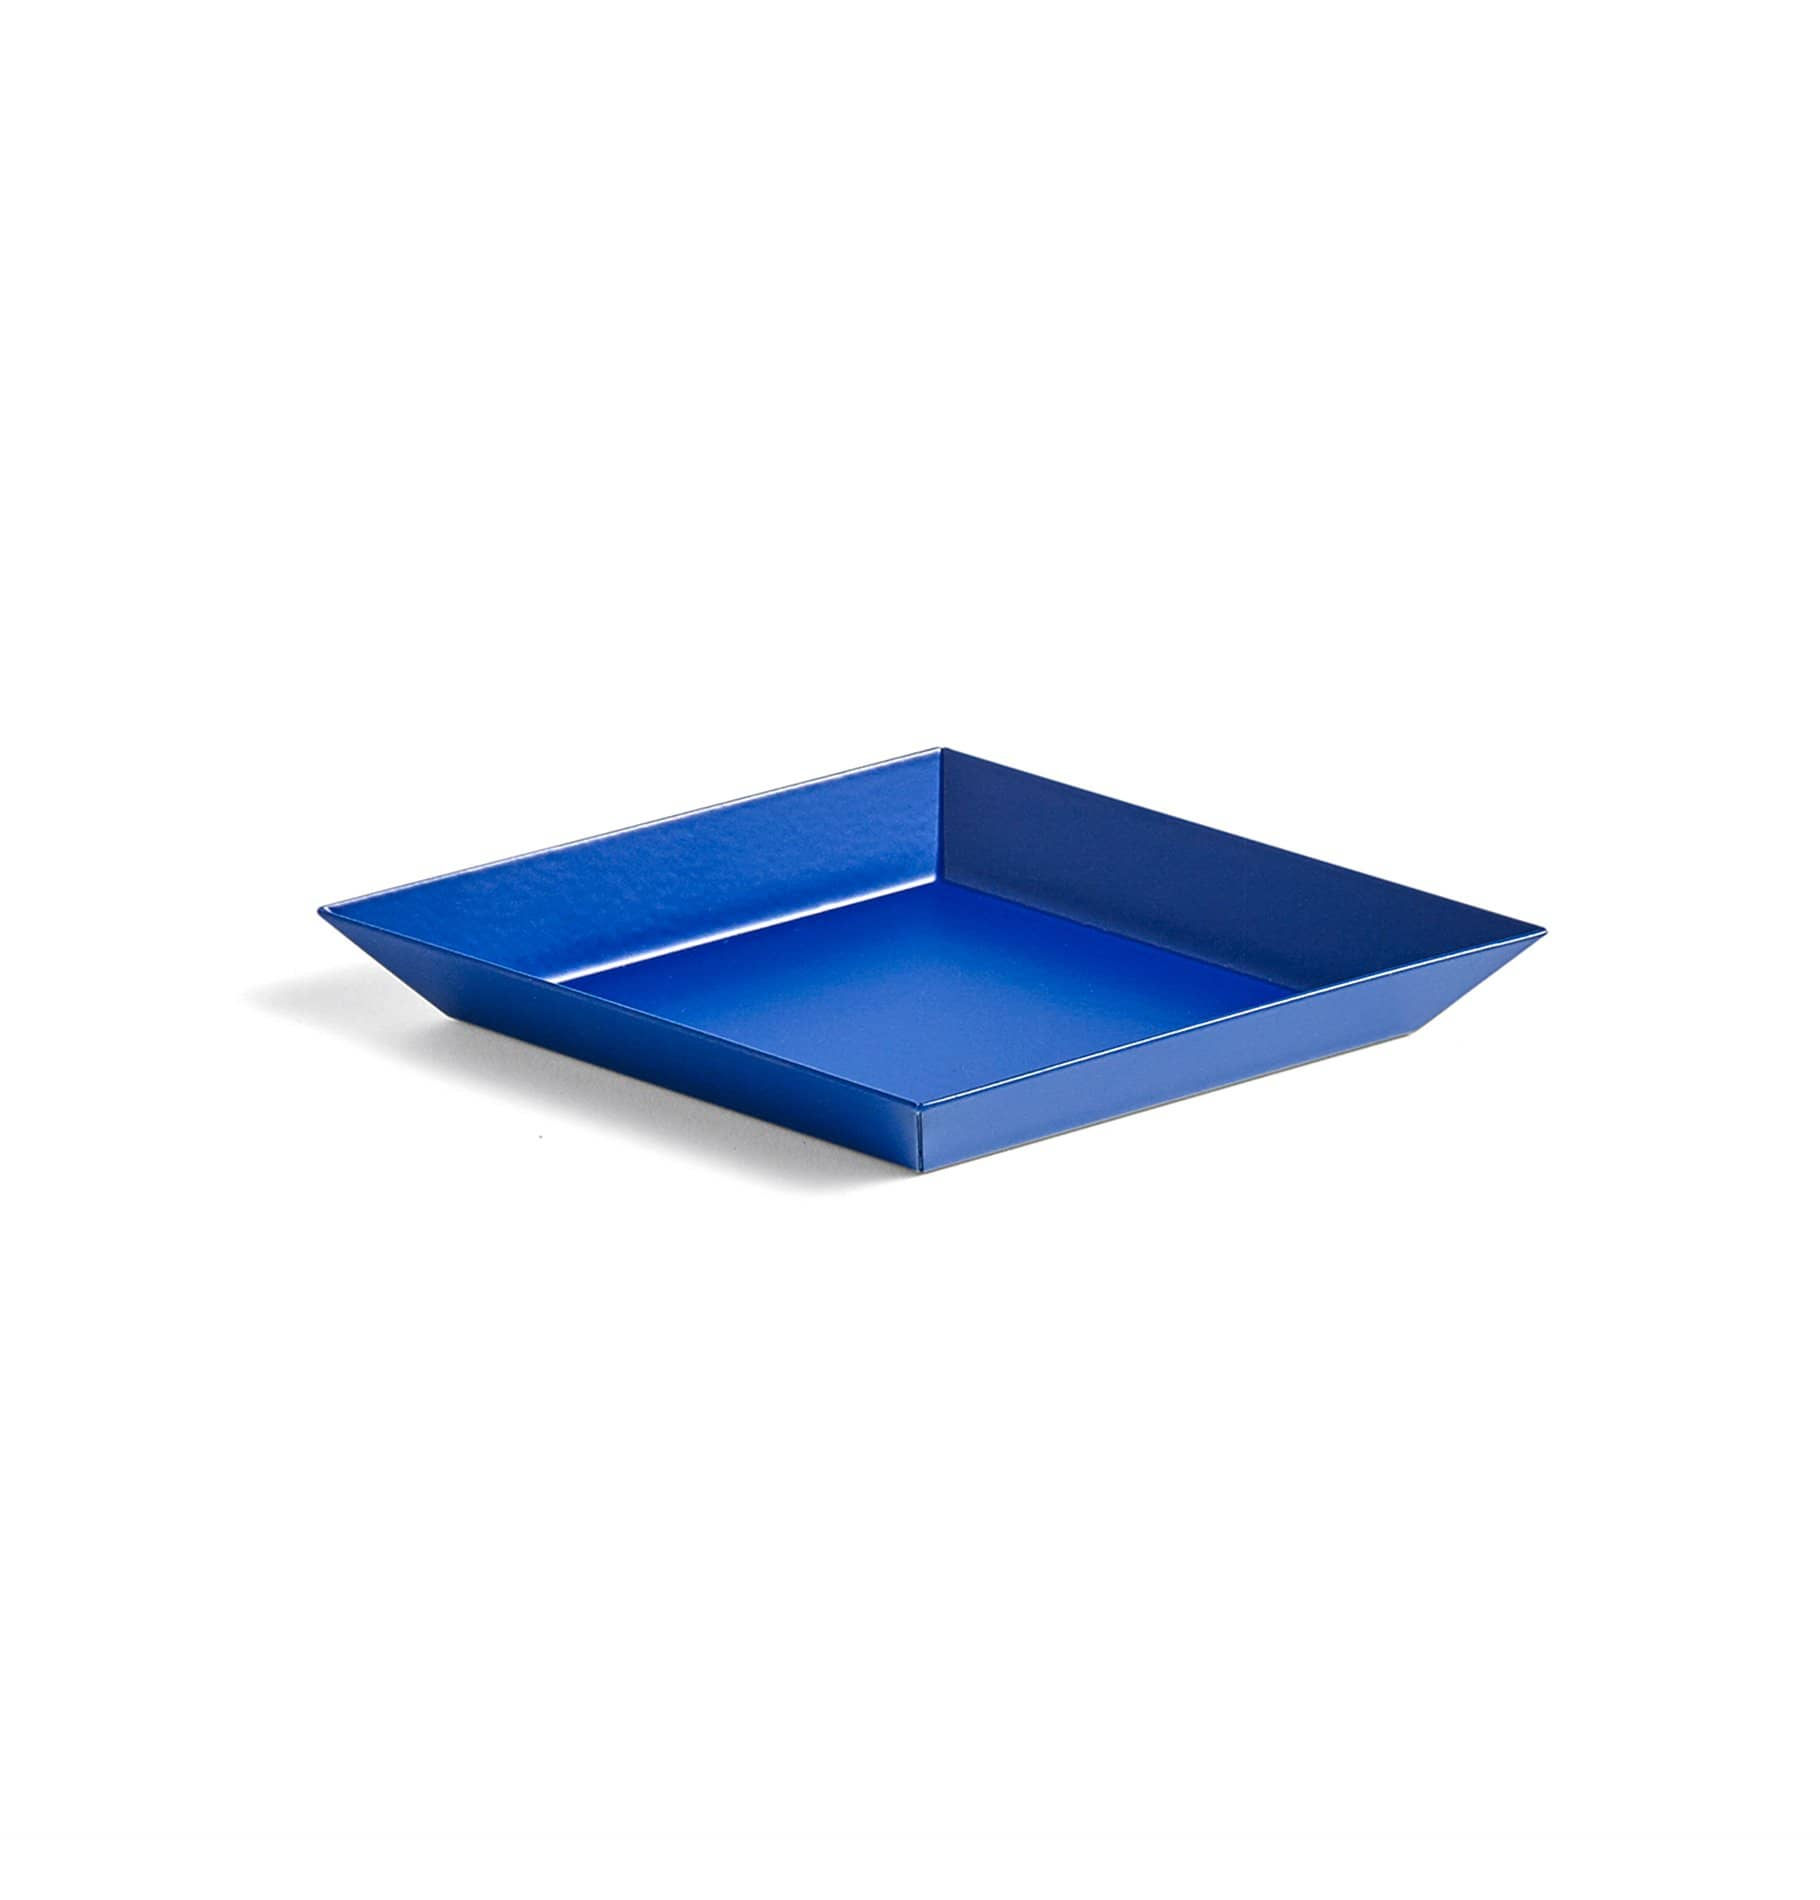 HAY Kaleido Tray - Royal Blue XS